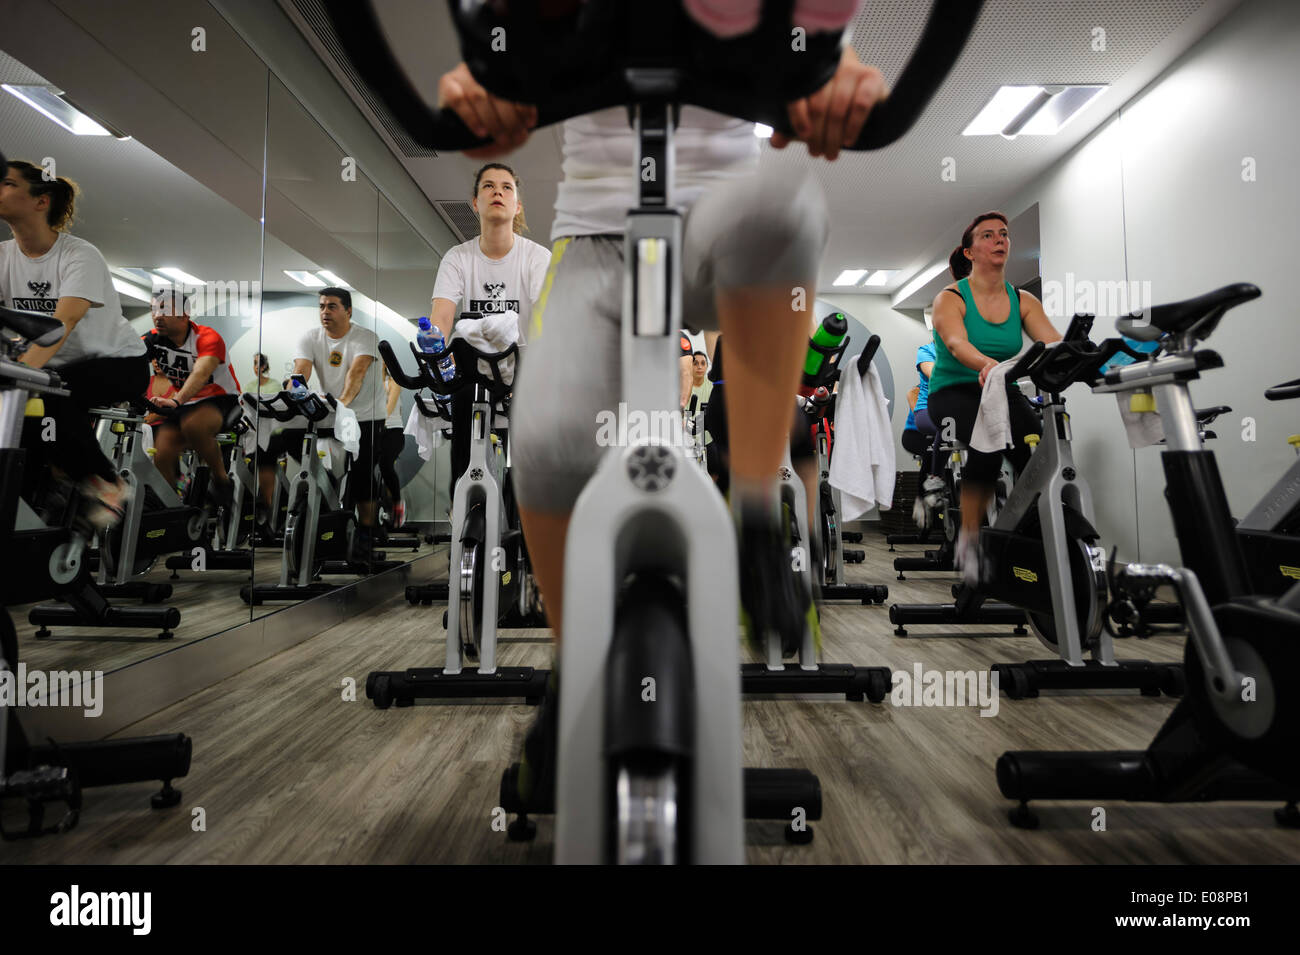 People riding stationary bicycles during a spinning class at the gym - Stock Image